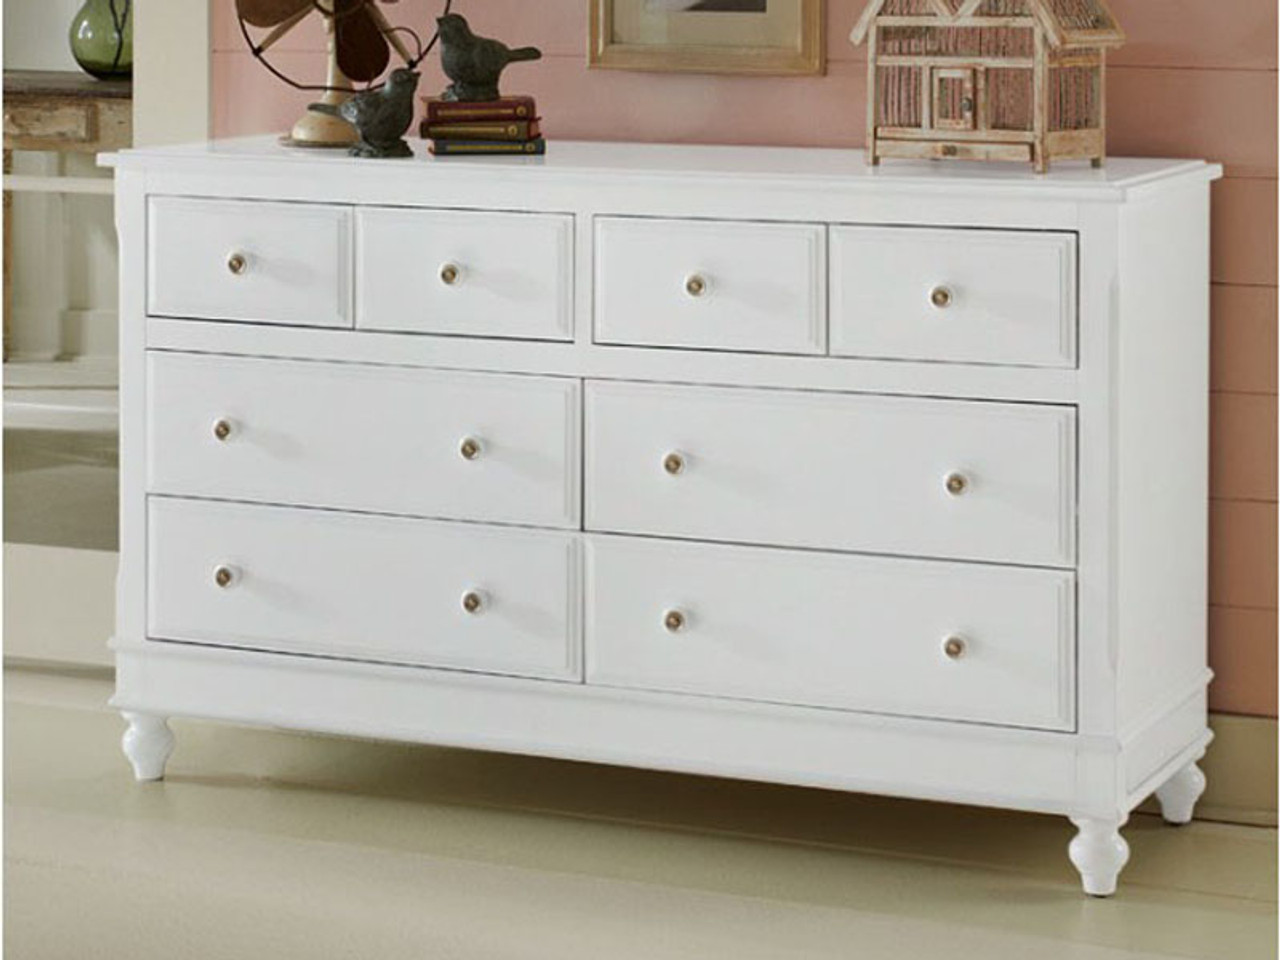 Lakeview 8 Drawer Dresser - White